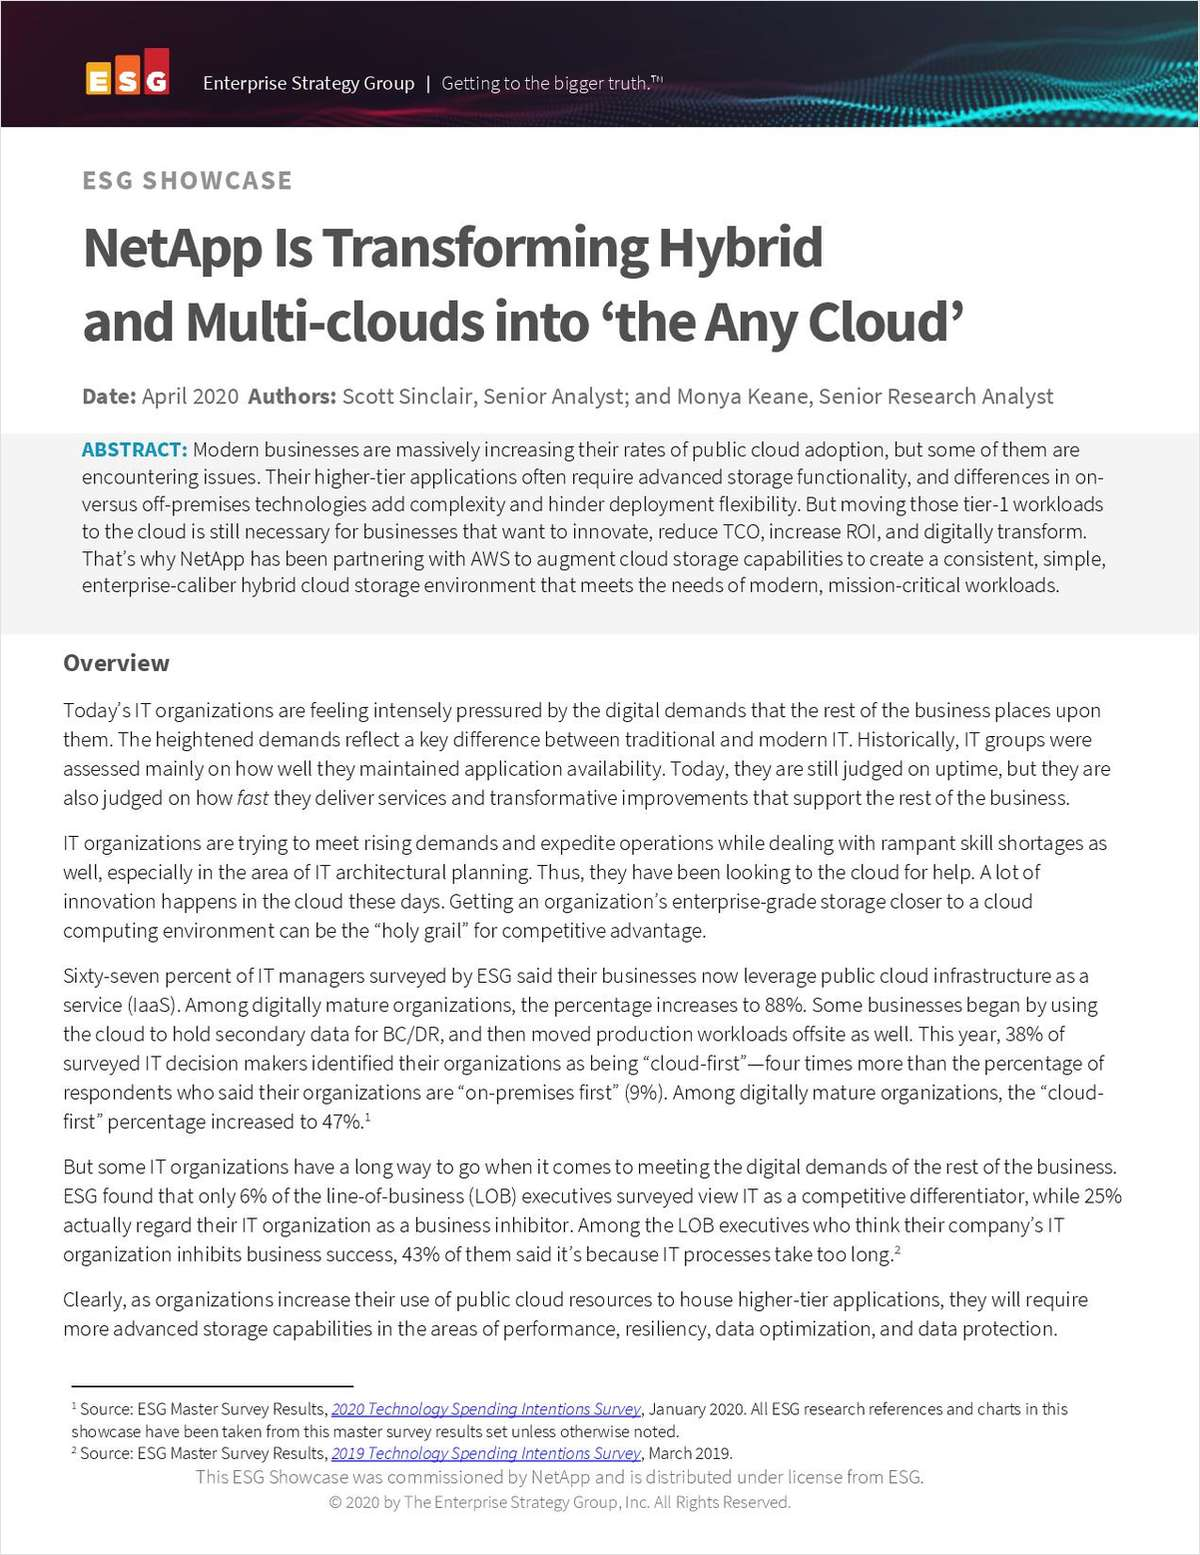 NetApp Is Transforming Hybrid and Multi-clouds into 'the Any Cloud'